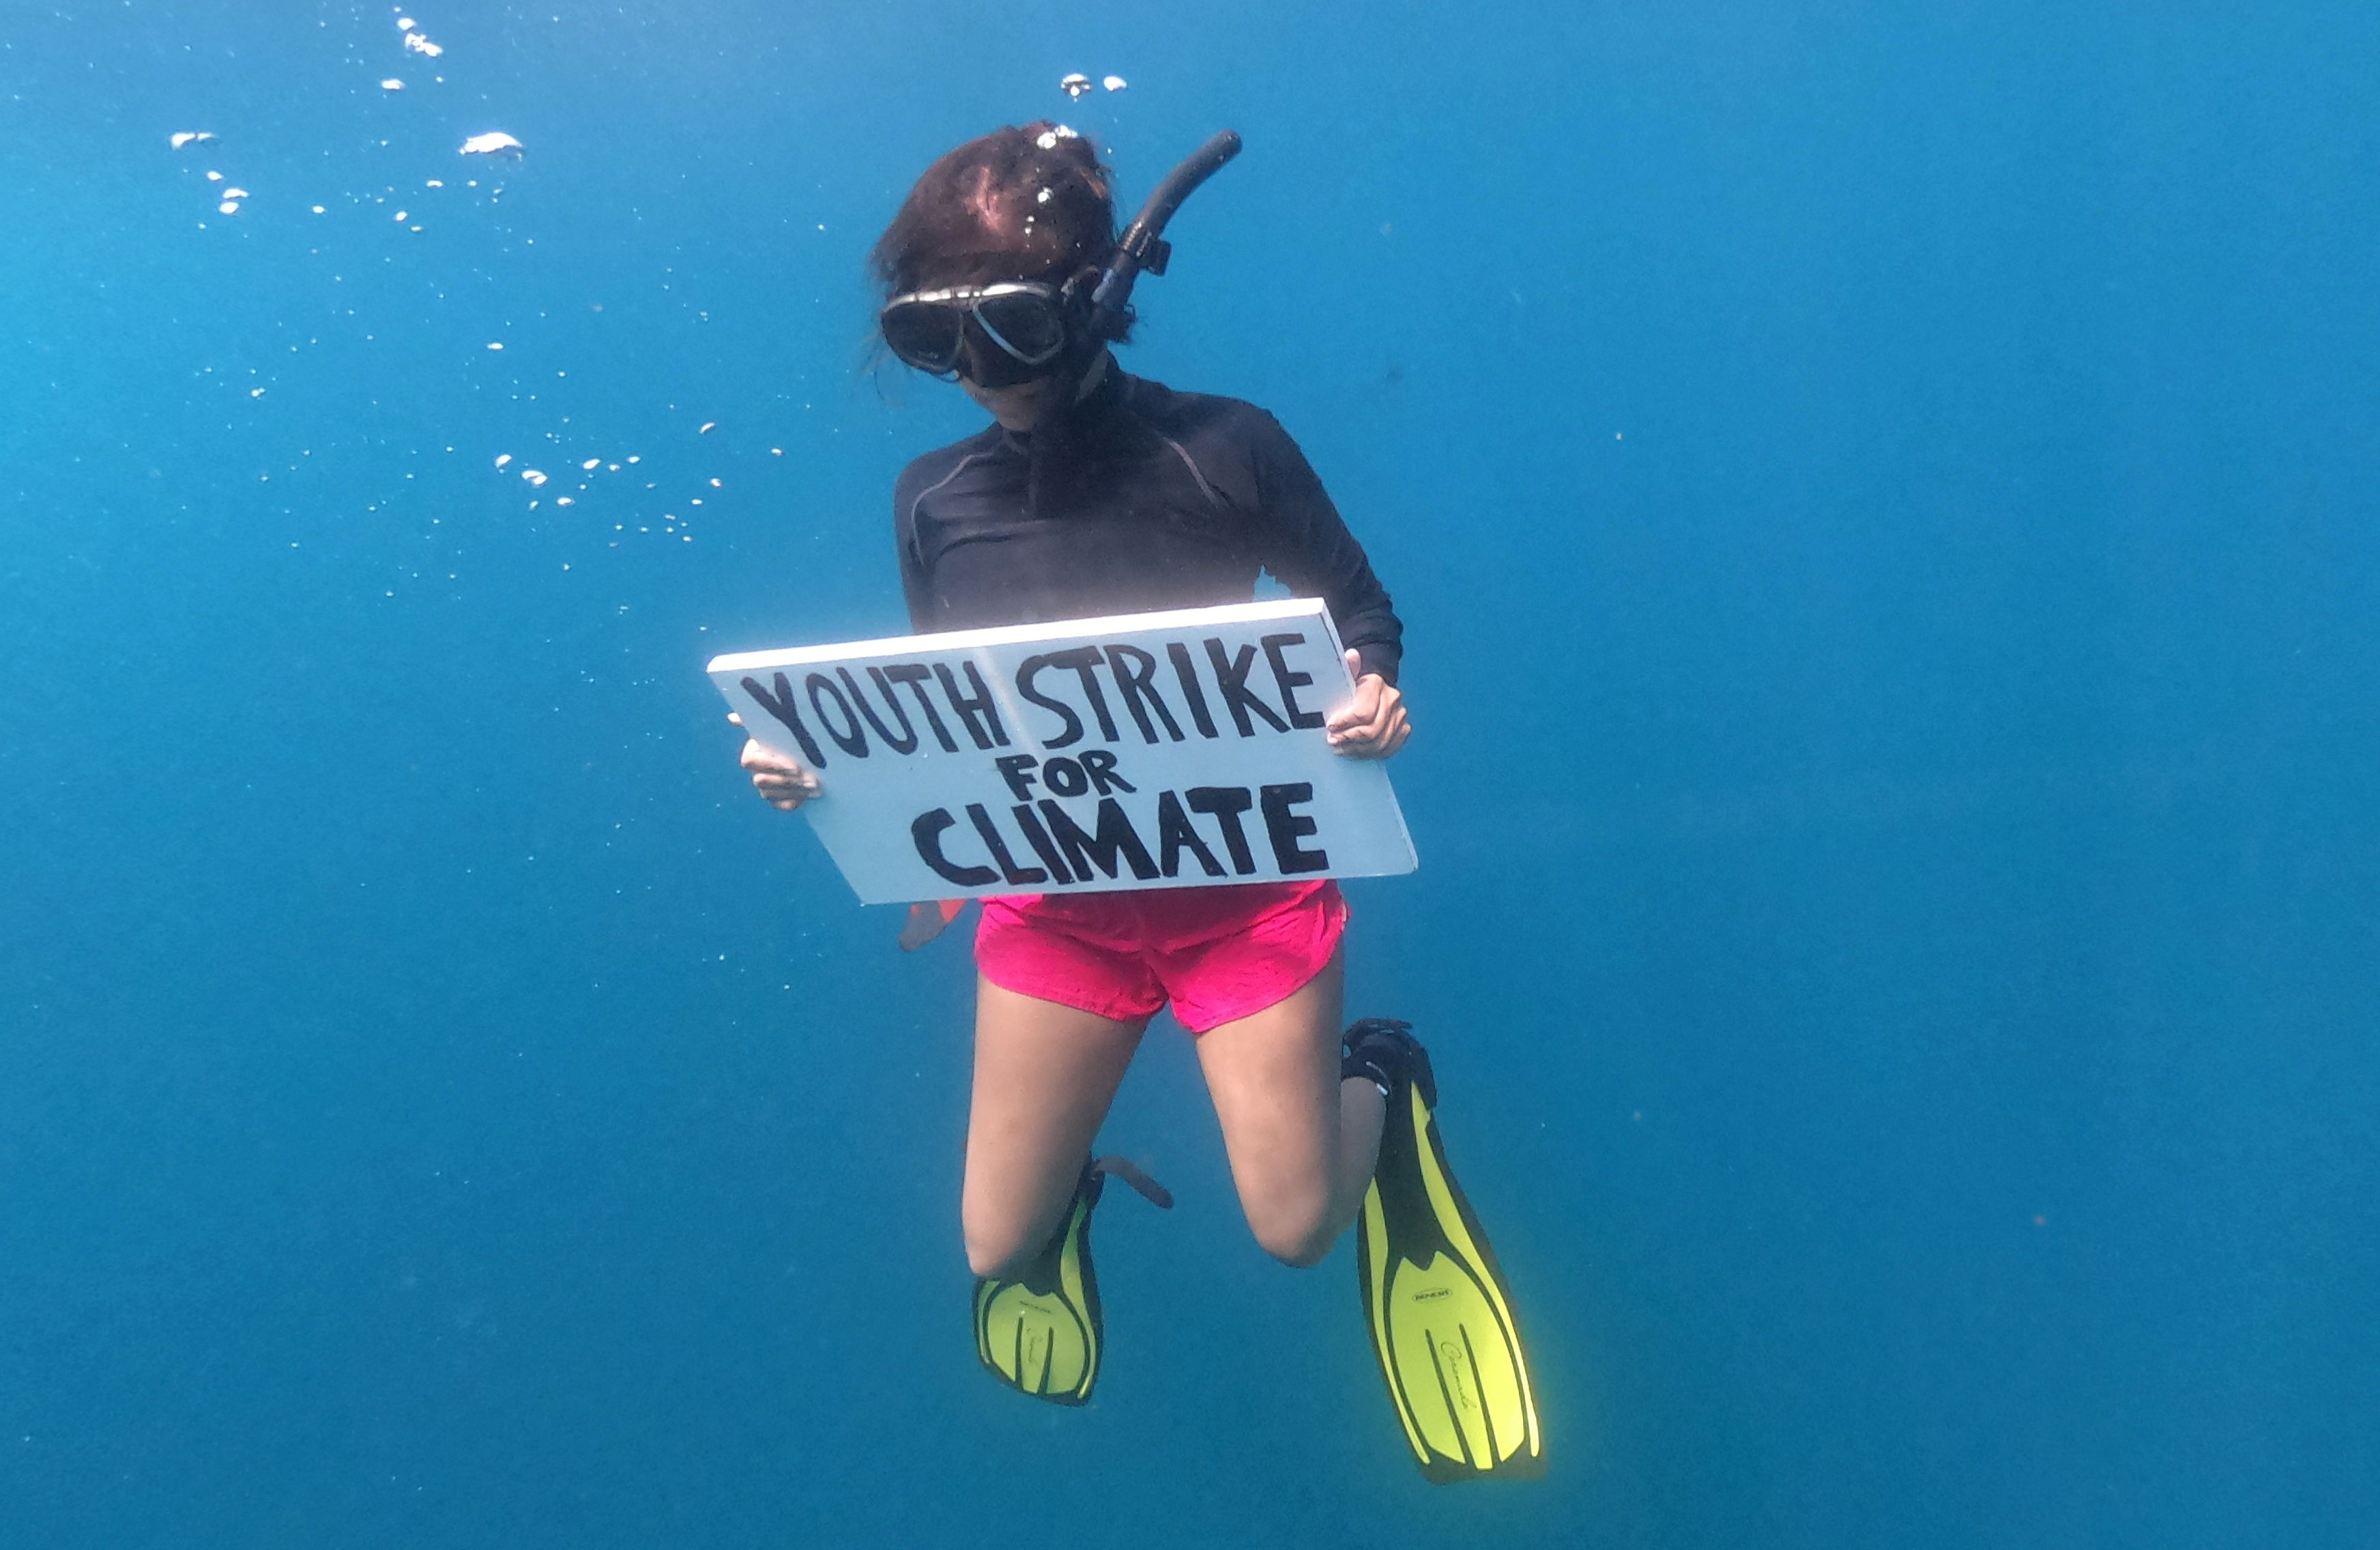 Mauritian scientist and climate change activist Shaama Sandooyea 24, holds a placard reading Youth Strike For Climate, during an underwater protest at the Saya de Malha Bank to highlight the need to protect the world's largest seagrass meadow within the Mascarene plateau, Mauritius March 6, 2021. Picture taken March 6, 2021.